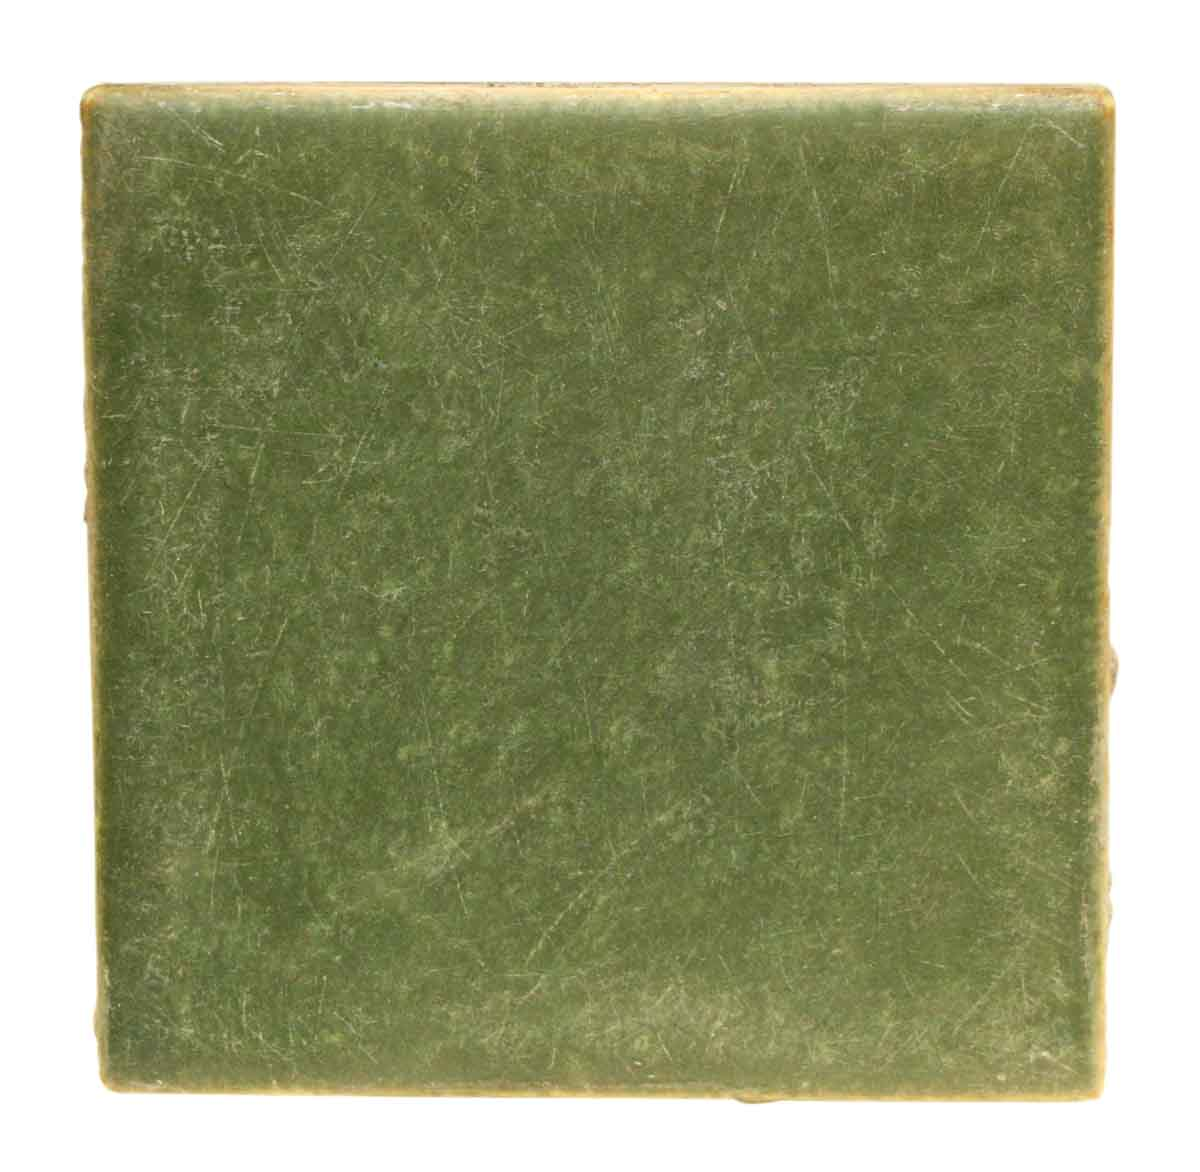 Antique Solid Green Tile